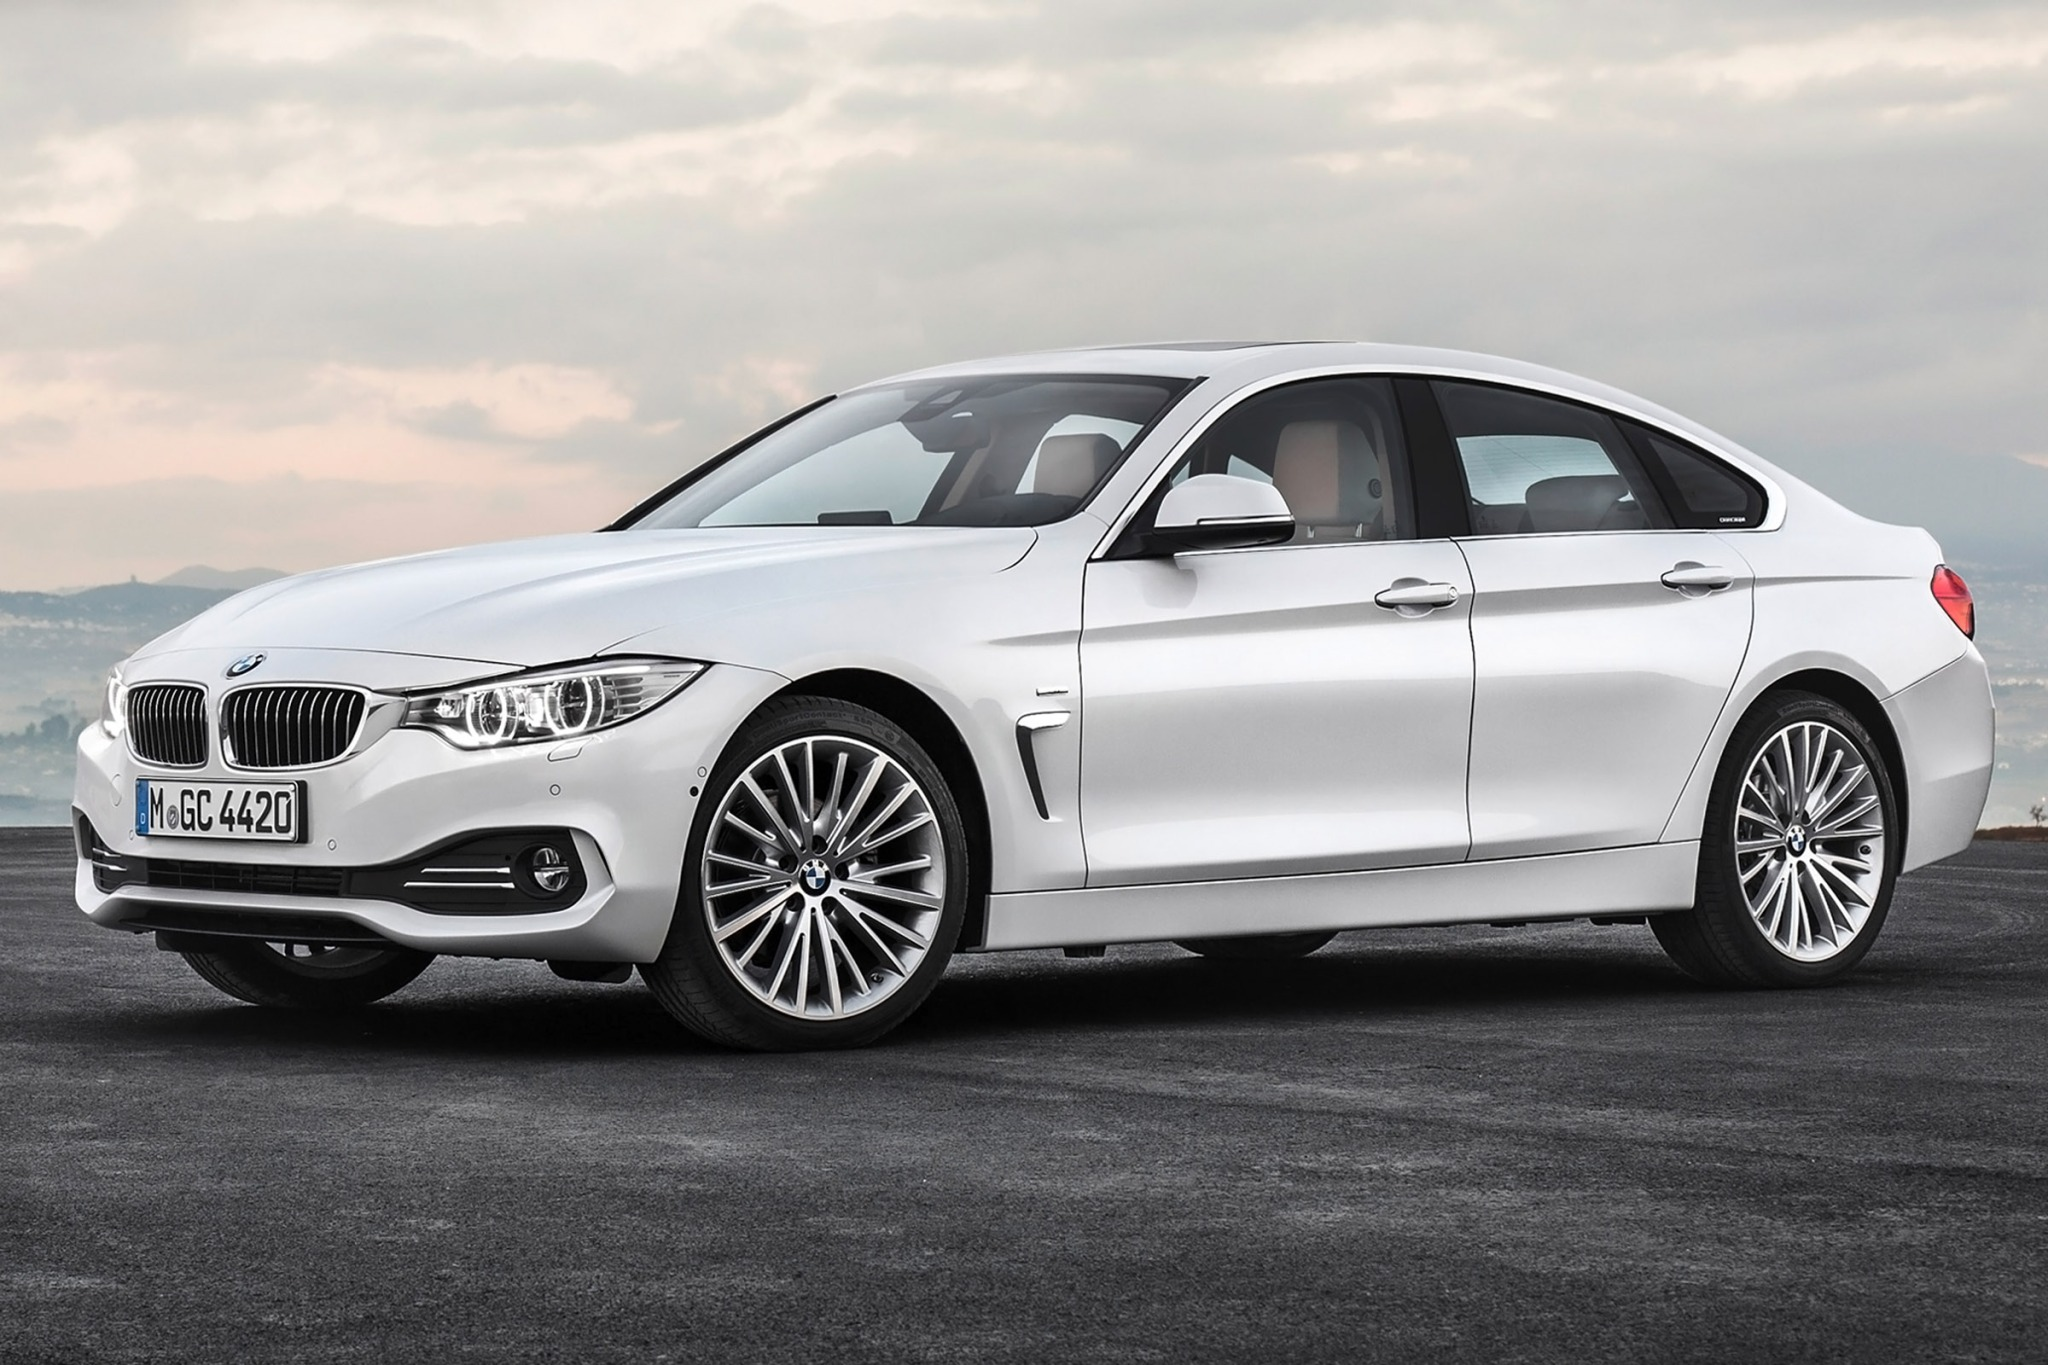 4 Series Sedan >> 2015 BMW 4 SERIES GRAN COUPE - Image #2